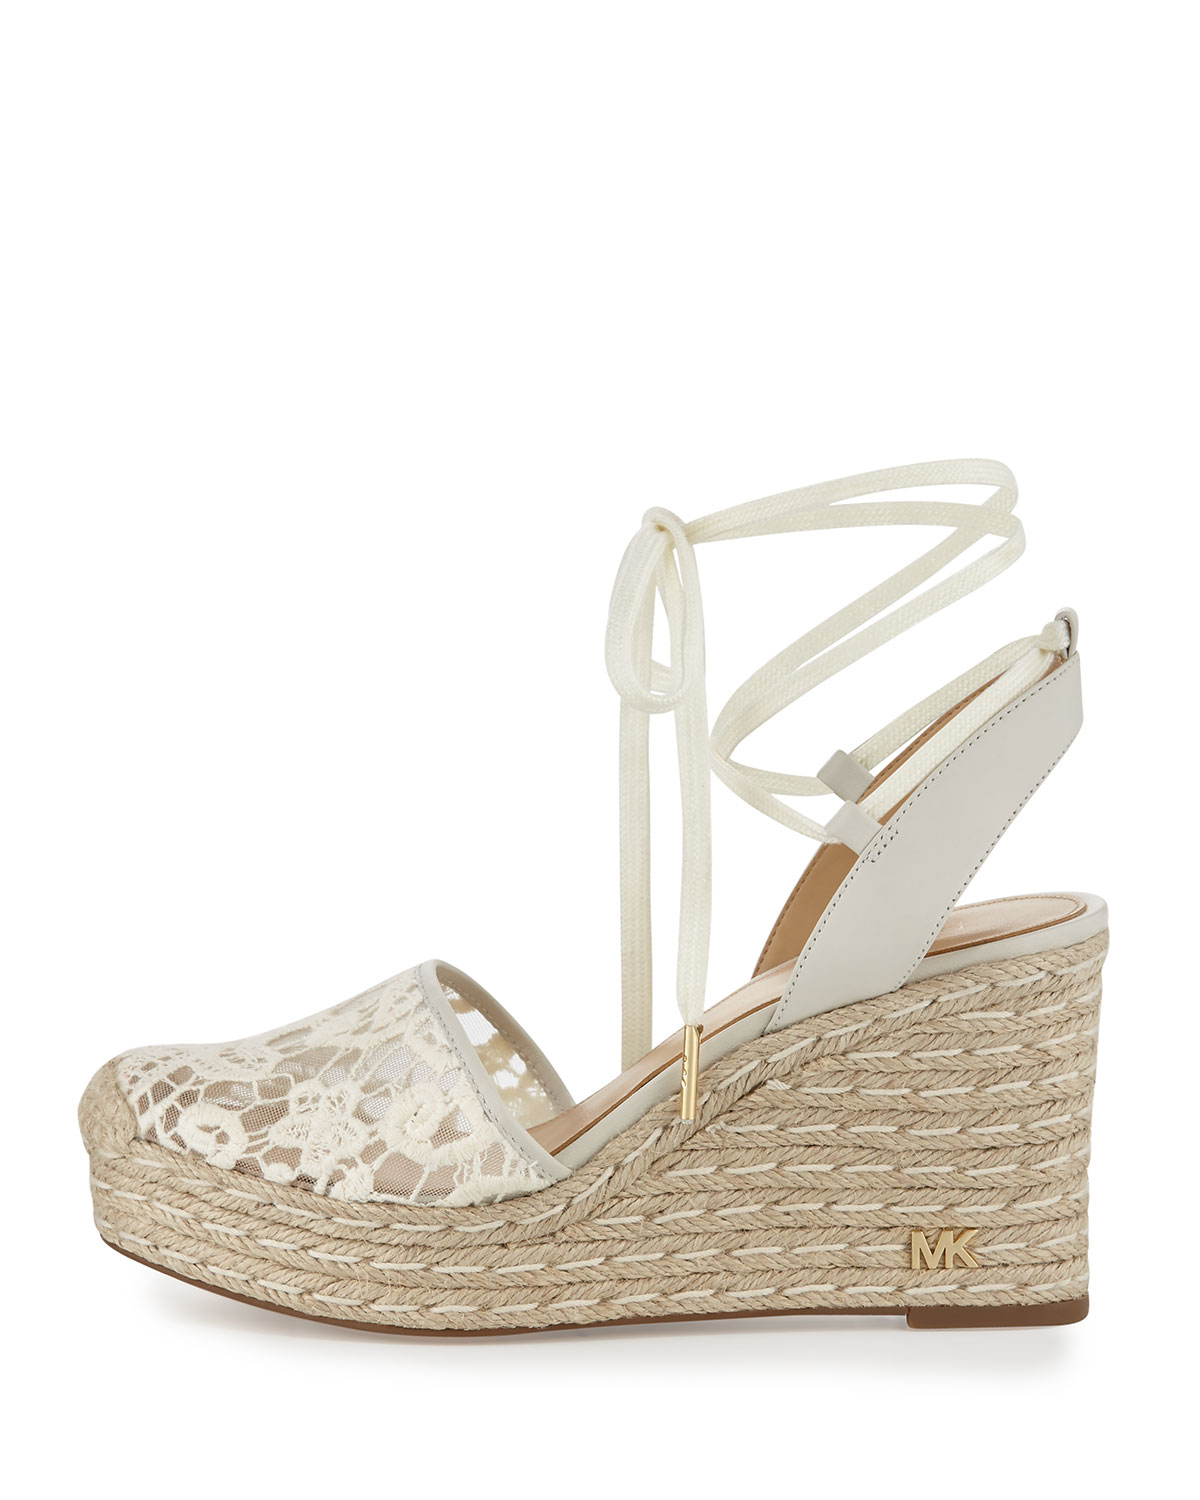 b00cd5661a2 Margie Embroidered Ankle-Wrap Espadrille Wedge Sandal, Cream